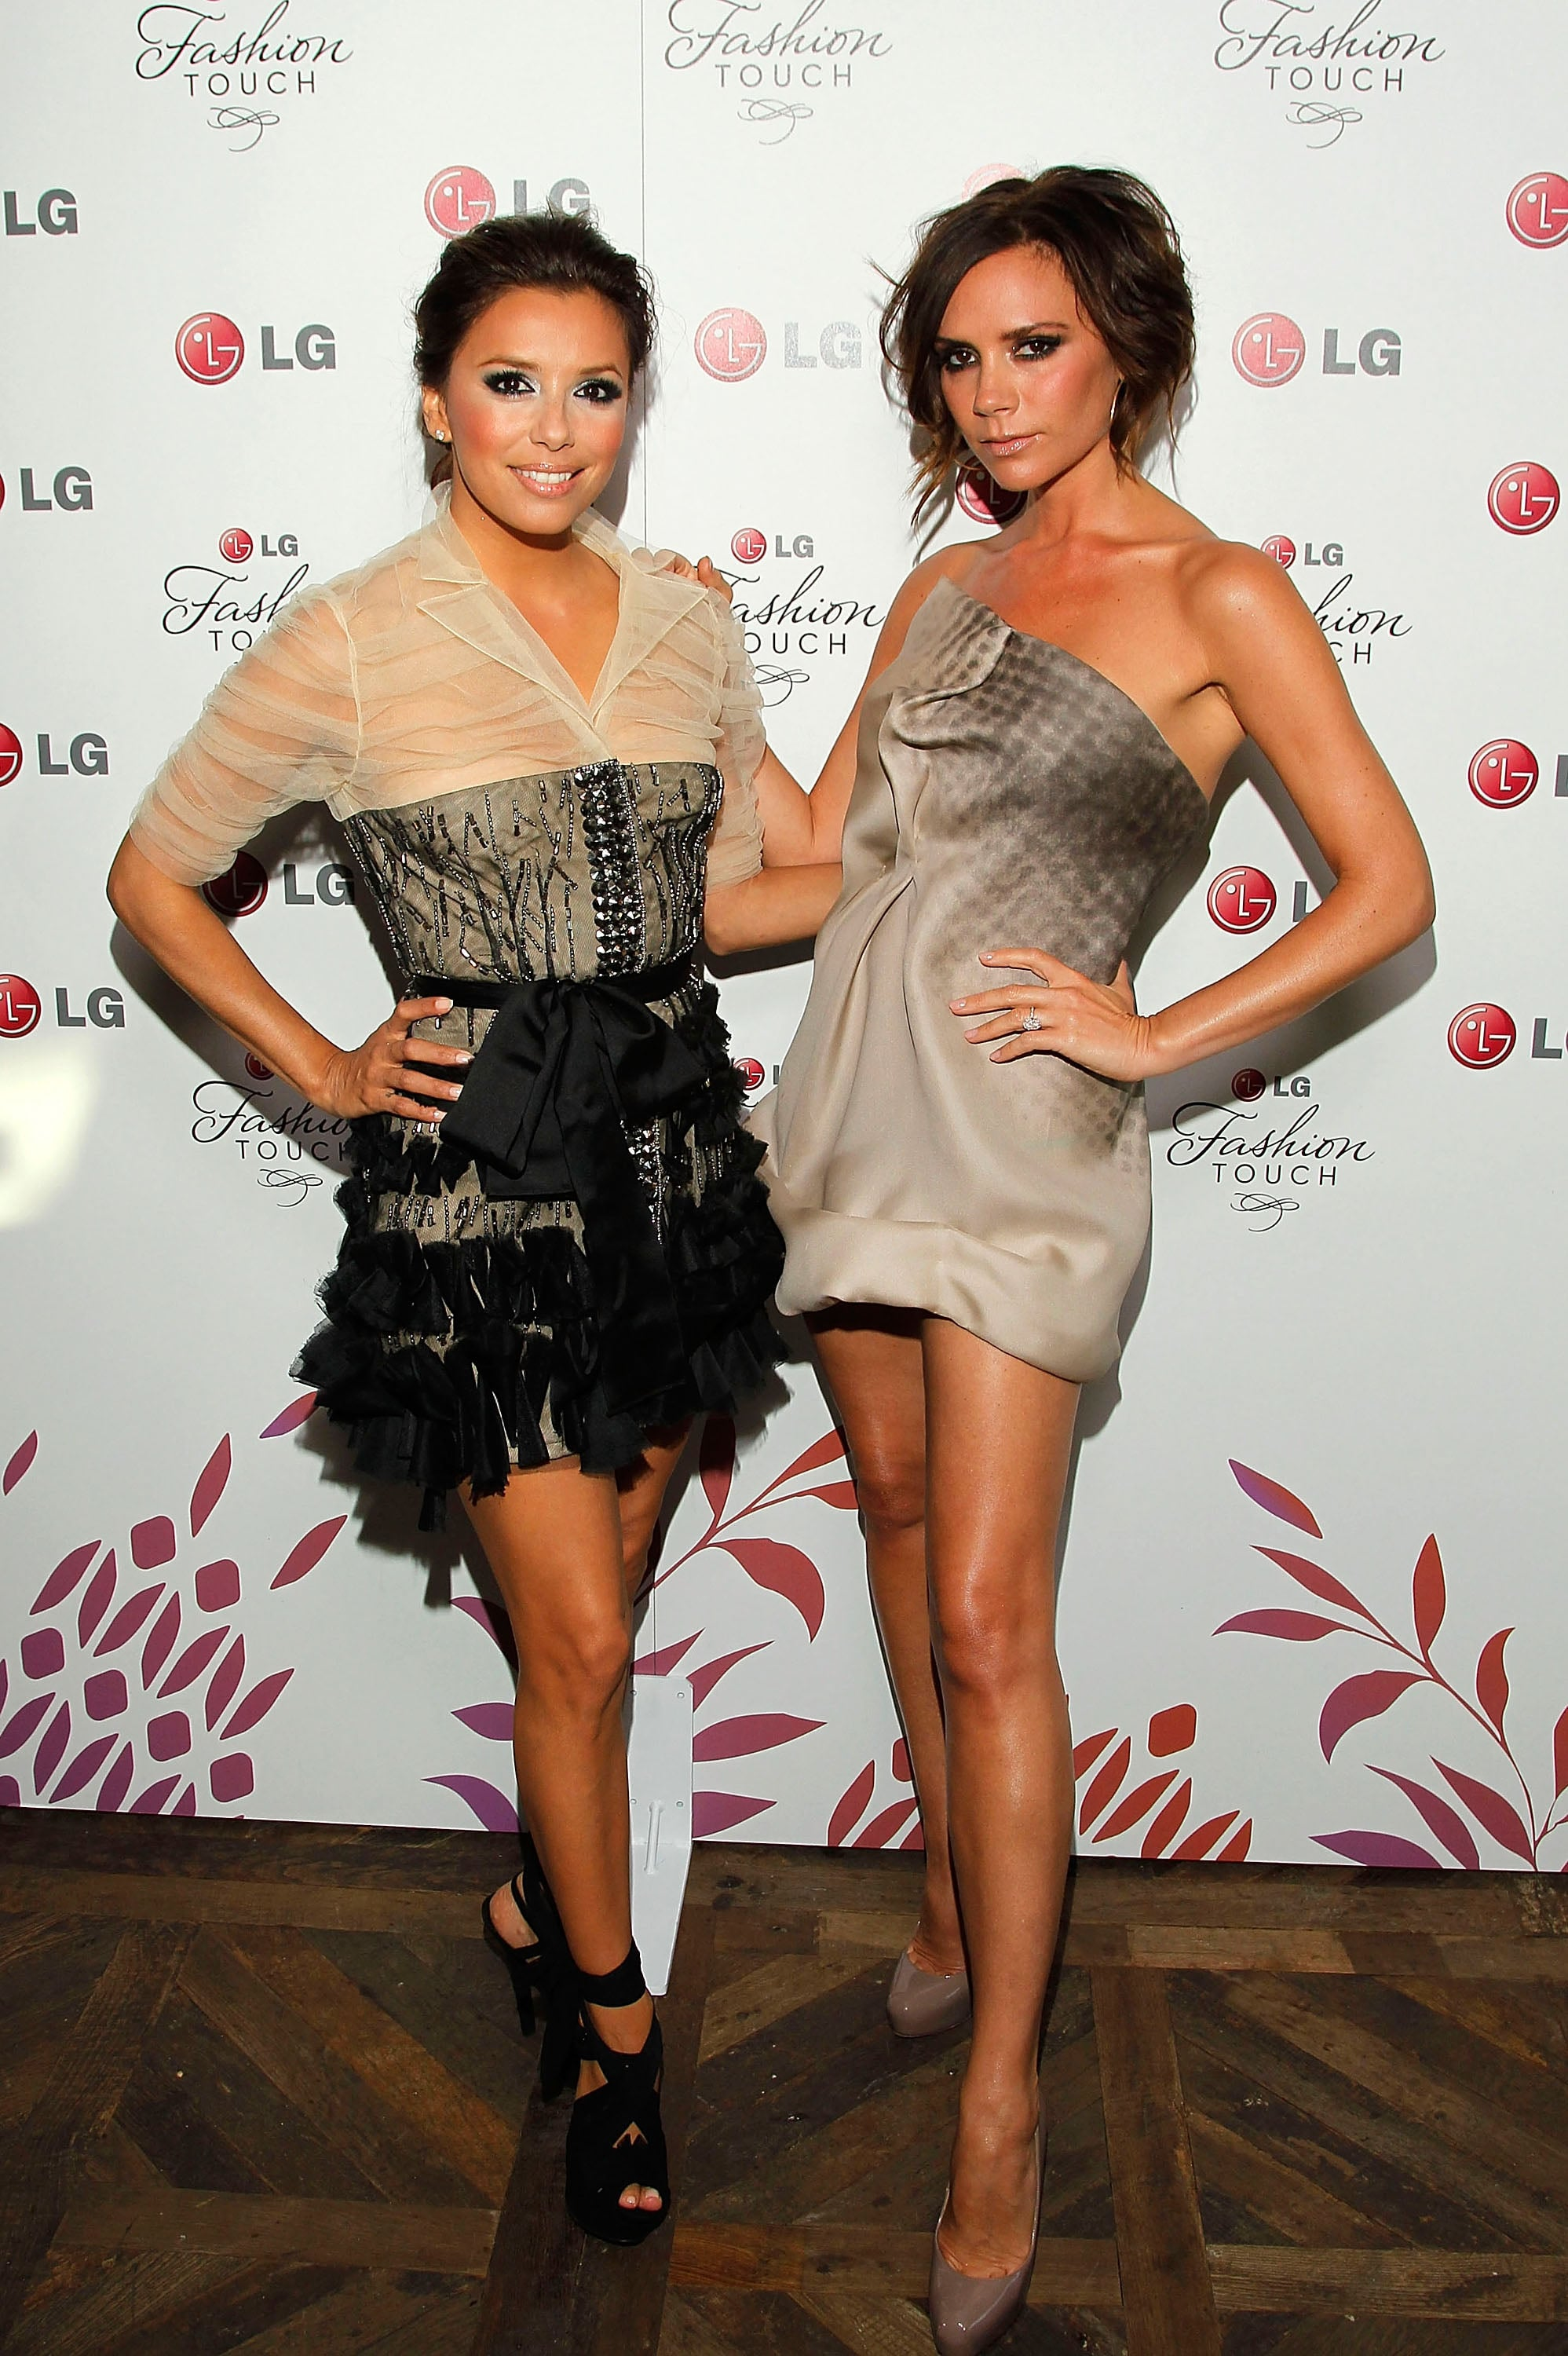 Pictures From Victoria Beckham And Eva Longoria's LG Party ...